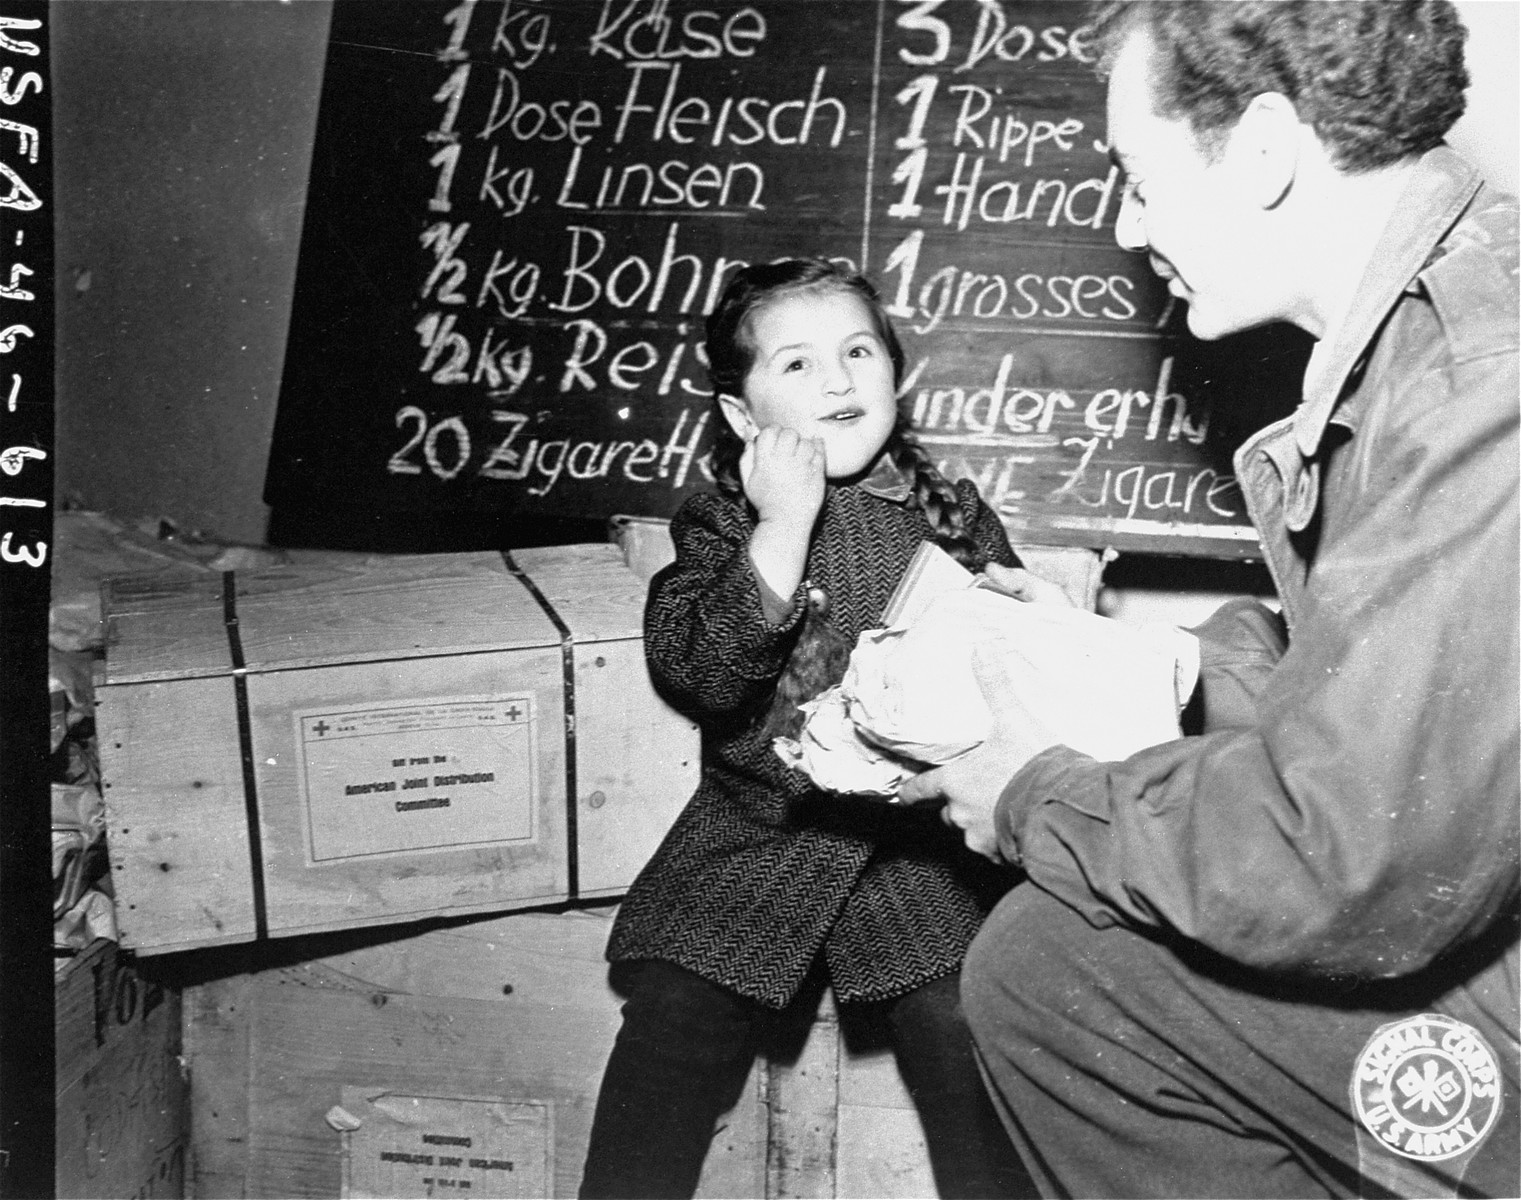 Harry Weinsaft of the American Jewish Joint Distribution Committee, gives food to three-year-old Renati Rulhater, a Jewish DP child in Vienna.  The campaign to distribute food to needy refugees in Vienna is sponsored by the Jewish Joint Welfare Association of Vienna in conjunction with the JDC.